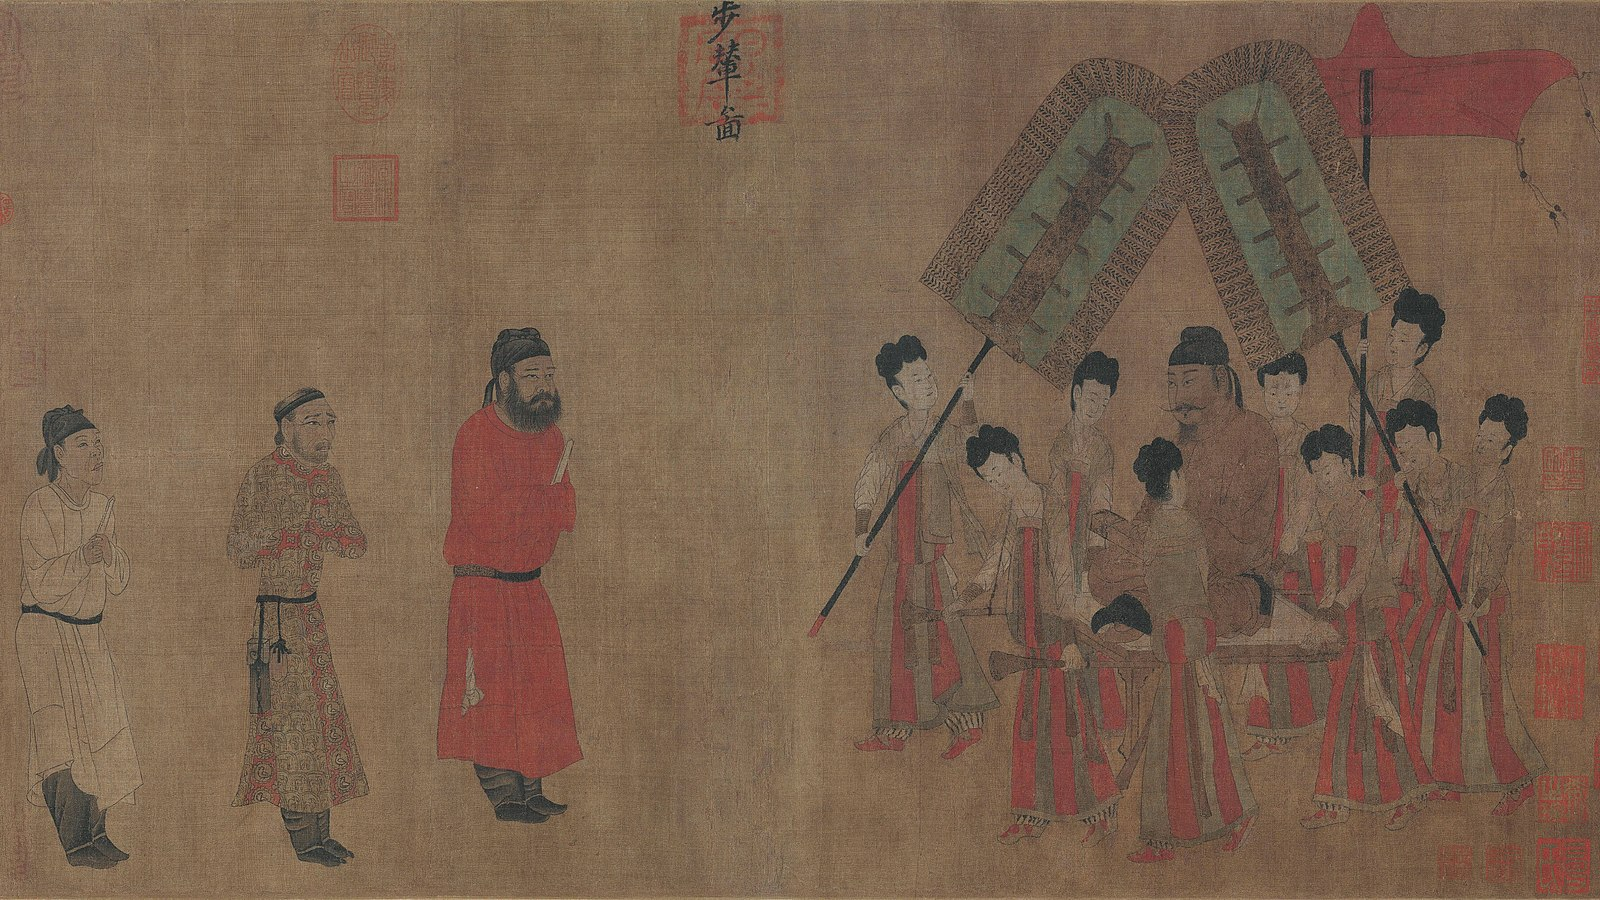 a history and life of emperor wu ti in ancient china Wudi is the posthumous name of emperor wu of han who was the seventh emperor of the han dynasty of china he ruled from 141-87 bc his reign lasted over half a century and is one of the longest reigns in chinese history.